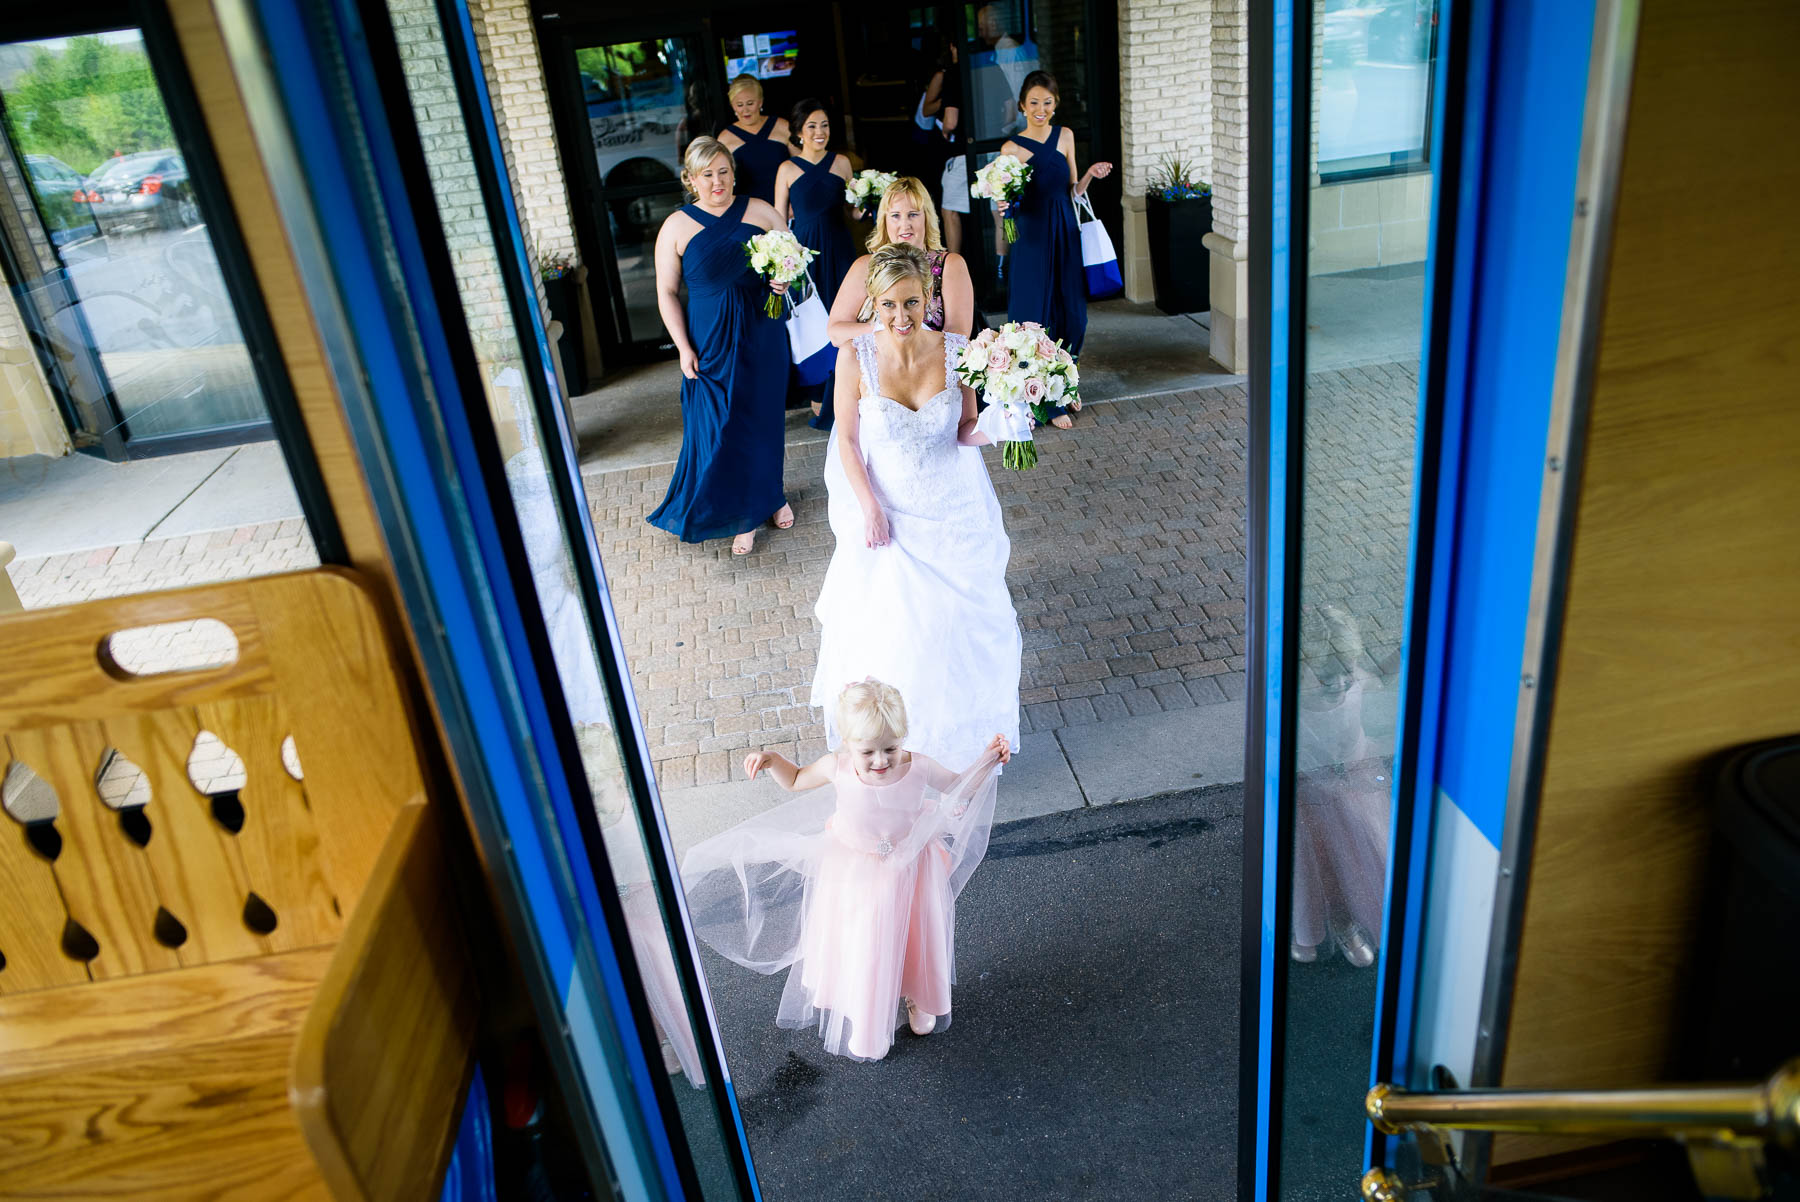 Bridesmaids get on a trolley to the ceremony on the wedding day.